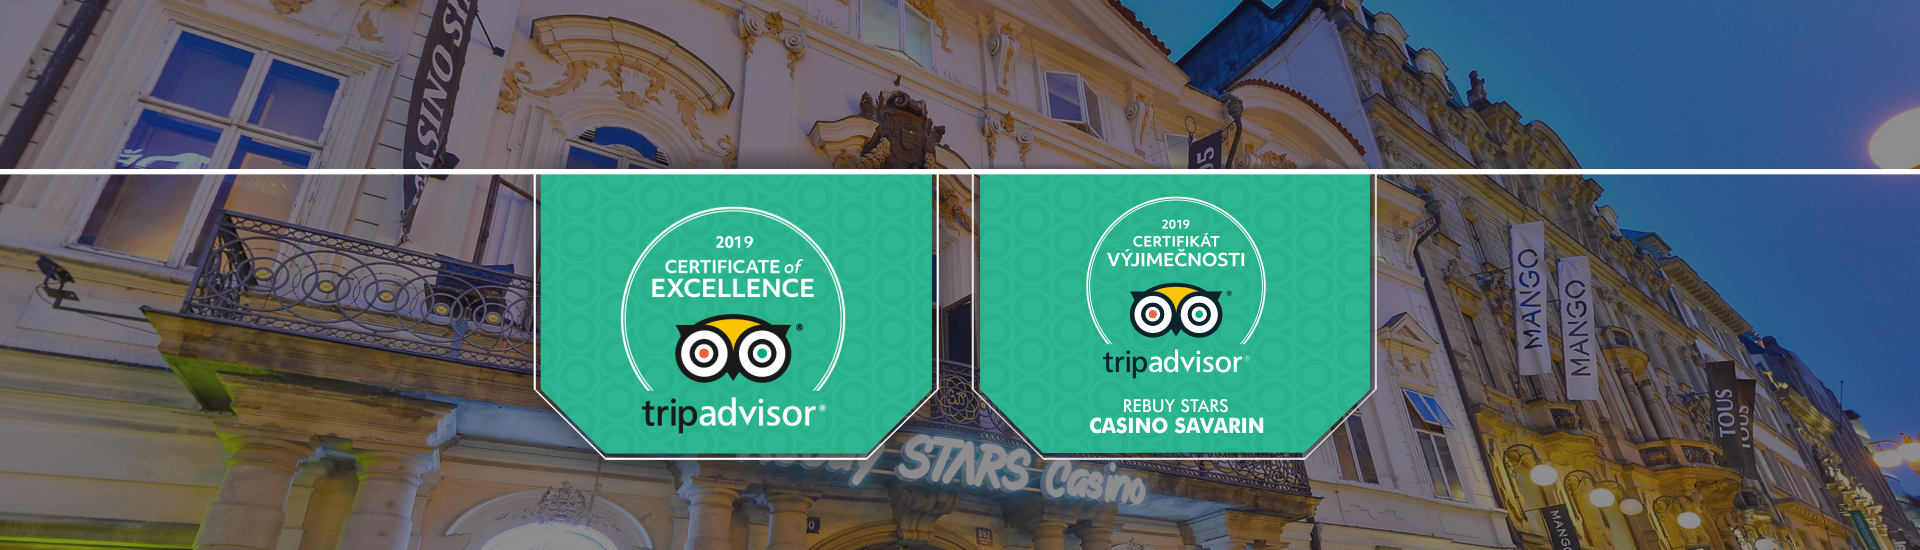 trip advisor - certificate of excellence - casino savarin prague - 2019